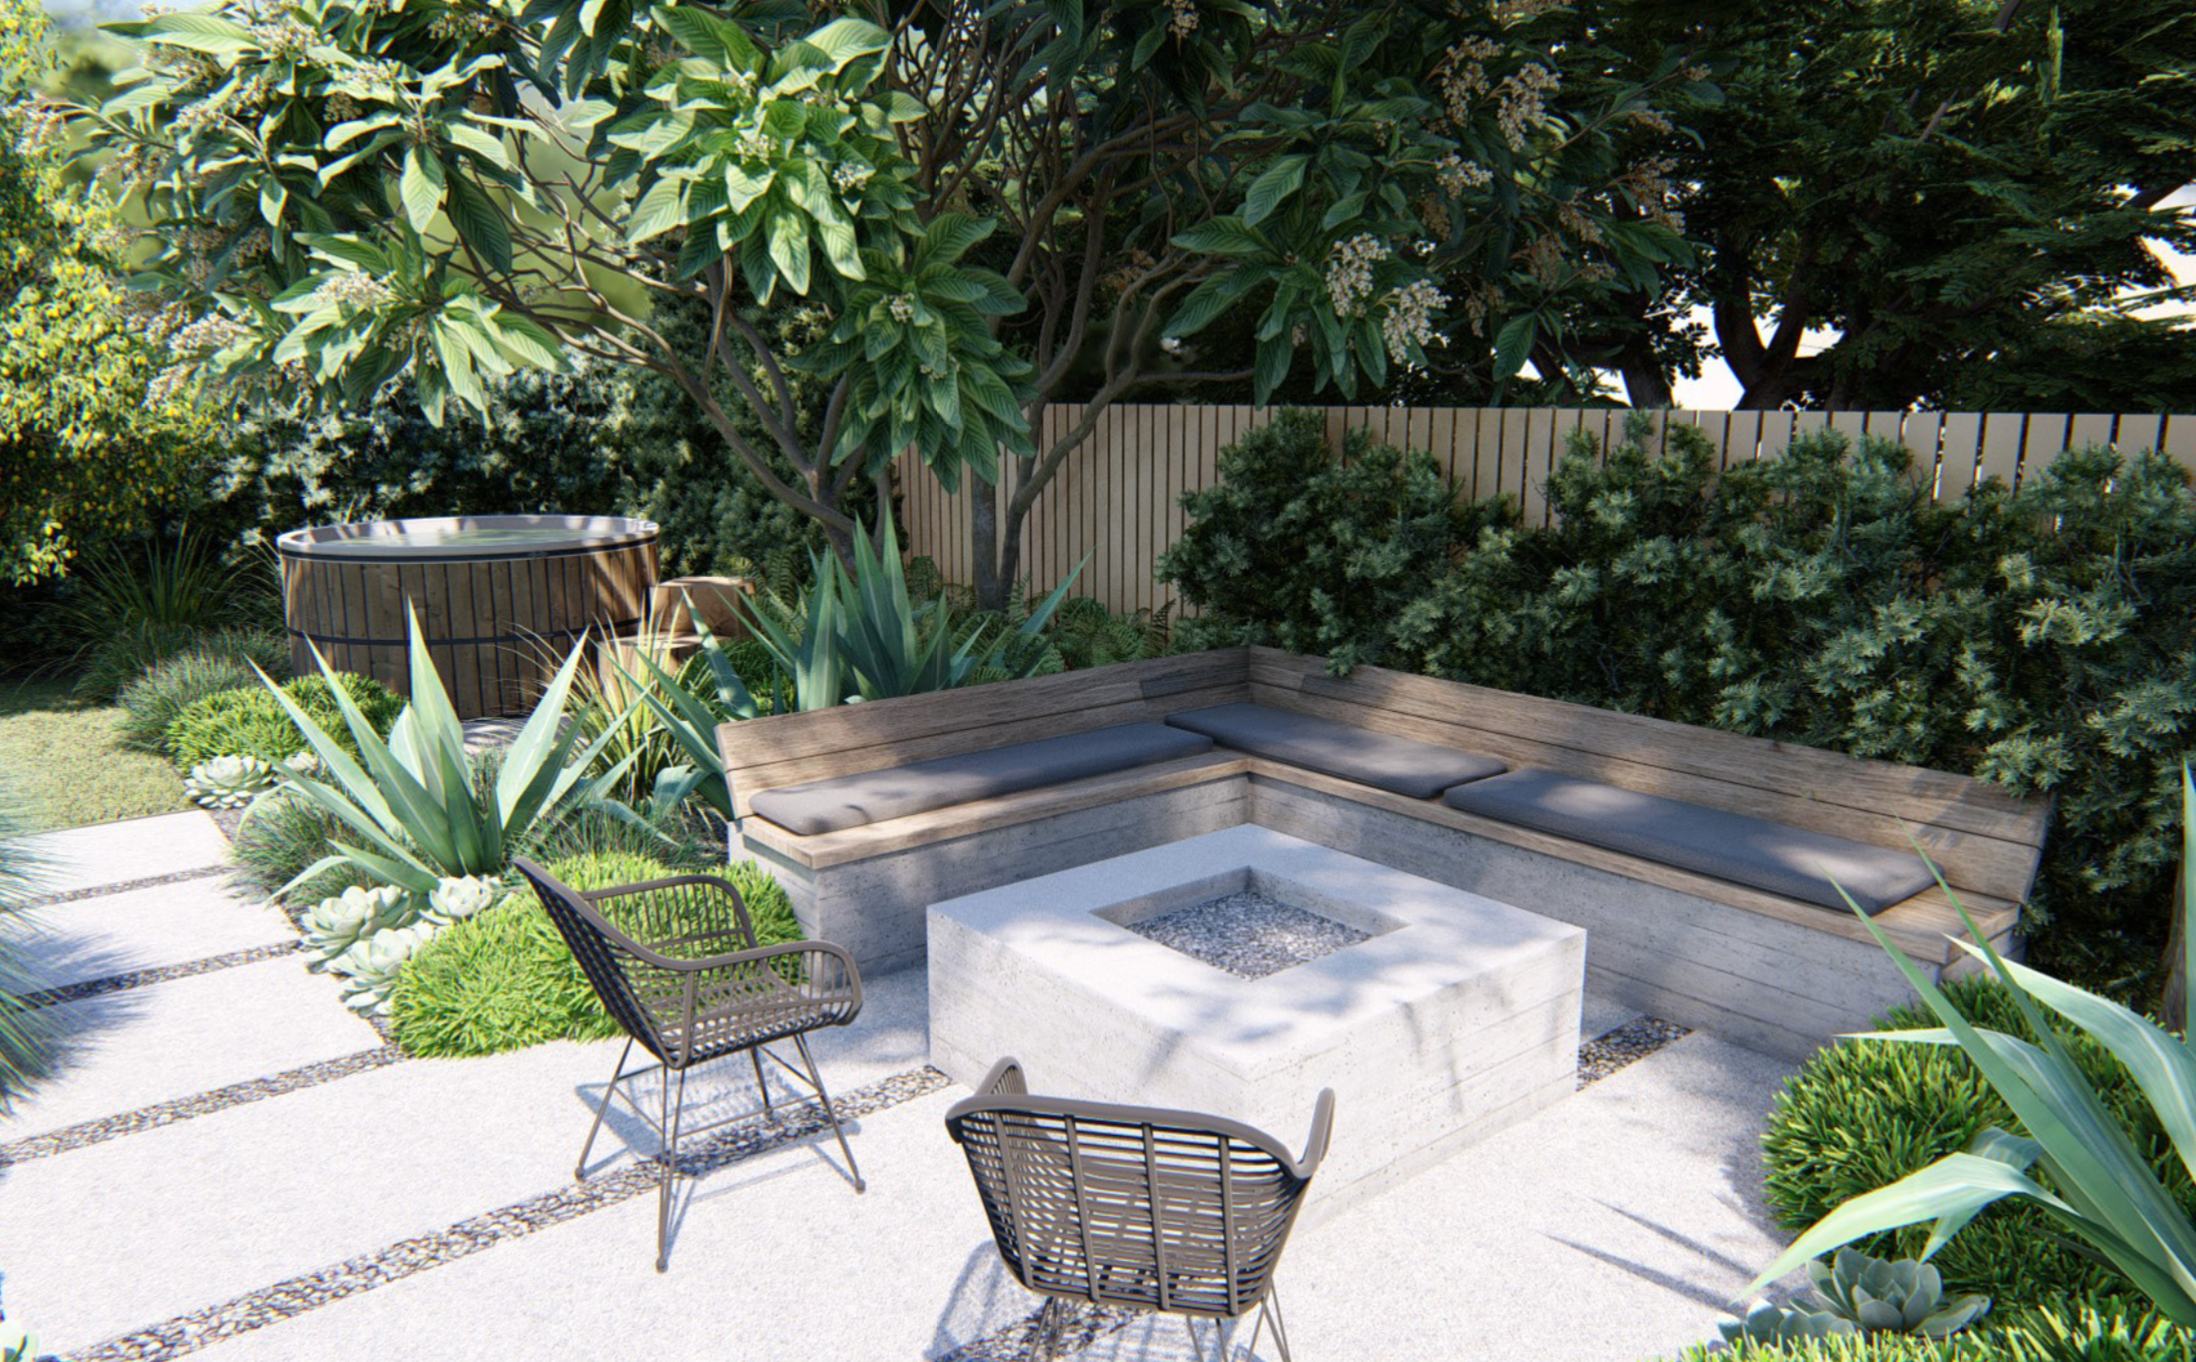 This backyard seating area and fire pit constructed using board-formed concrete and wood is the perfect space for entertaining friends or having a glass of wine in the evening.